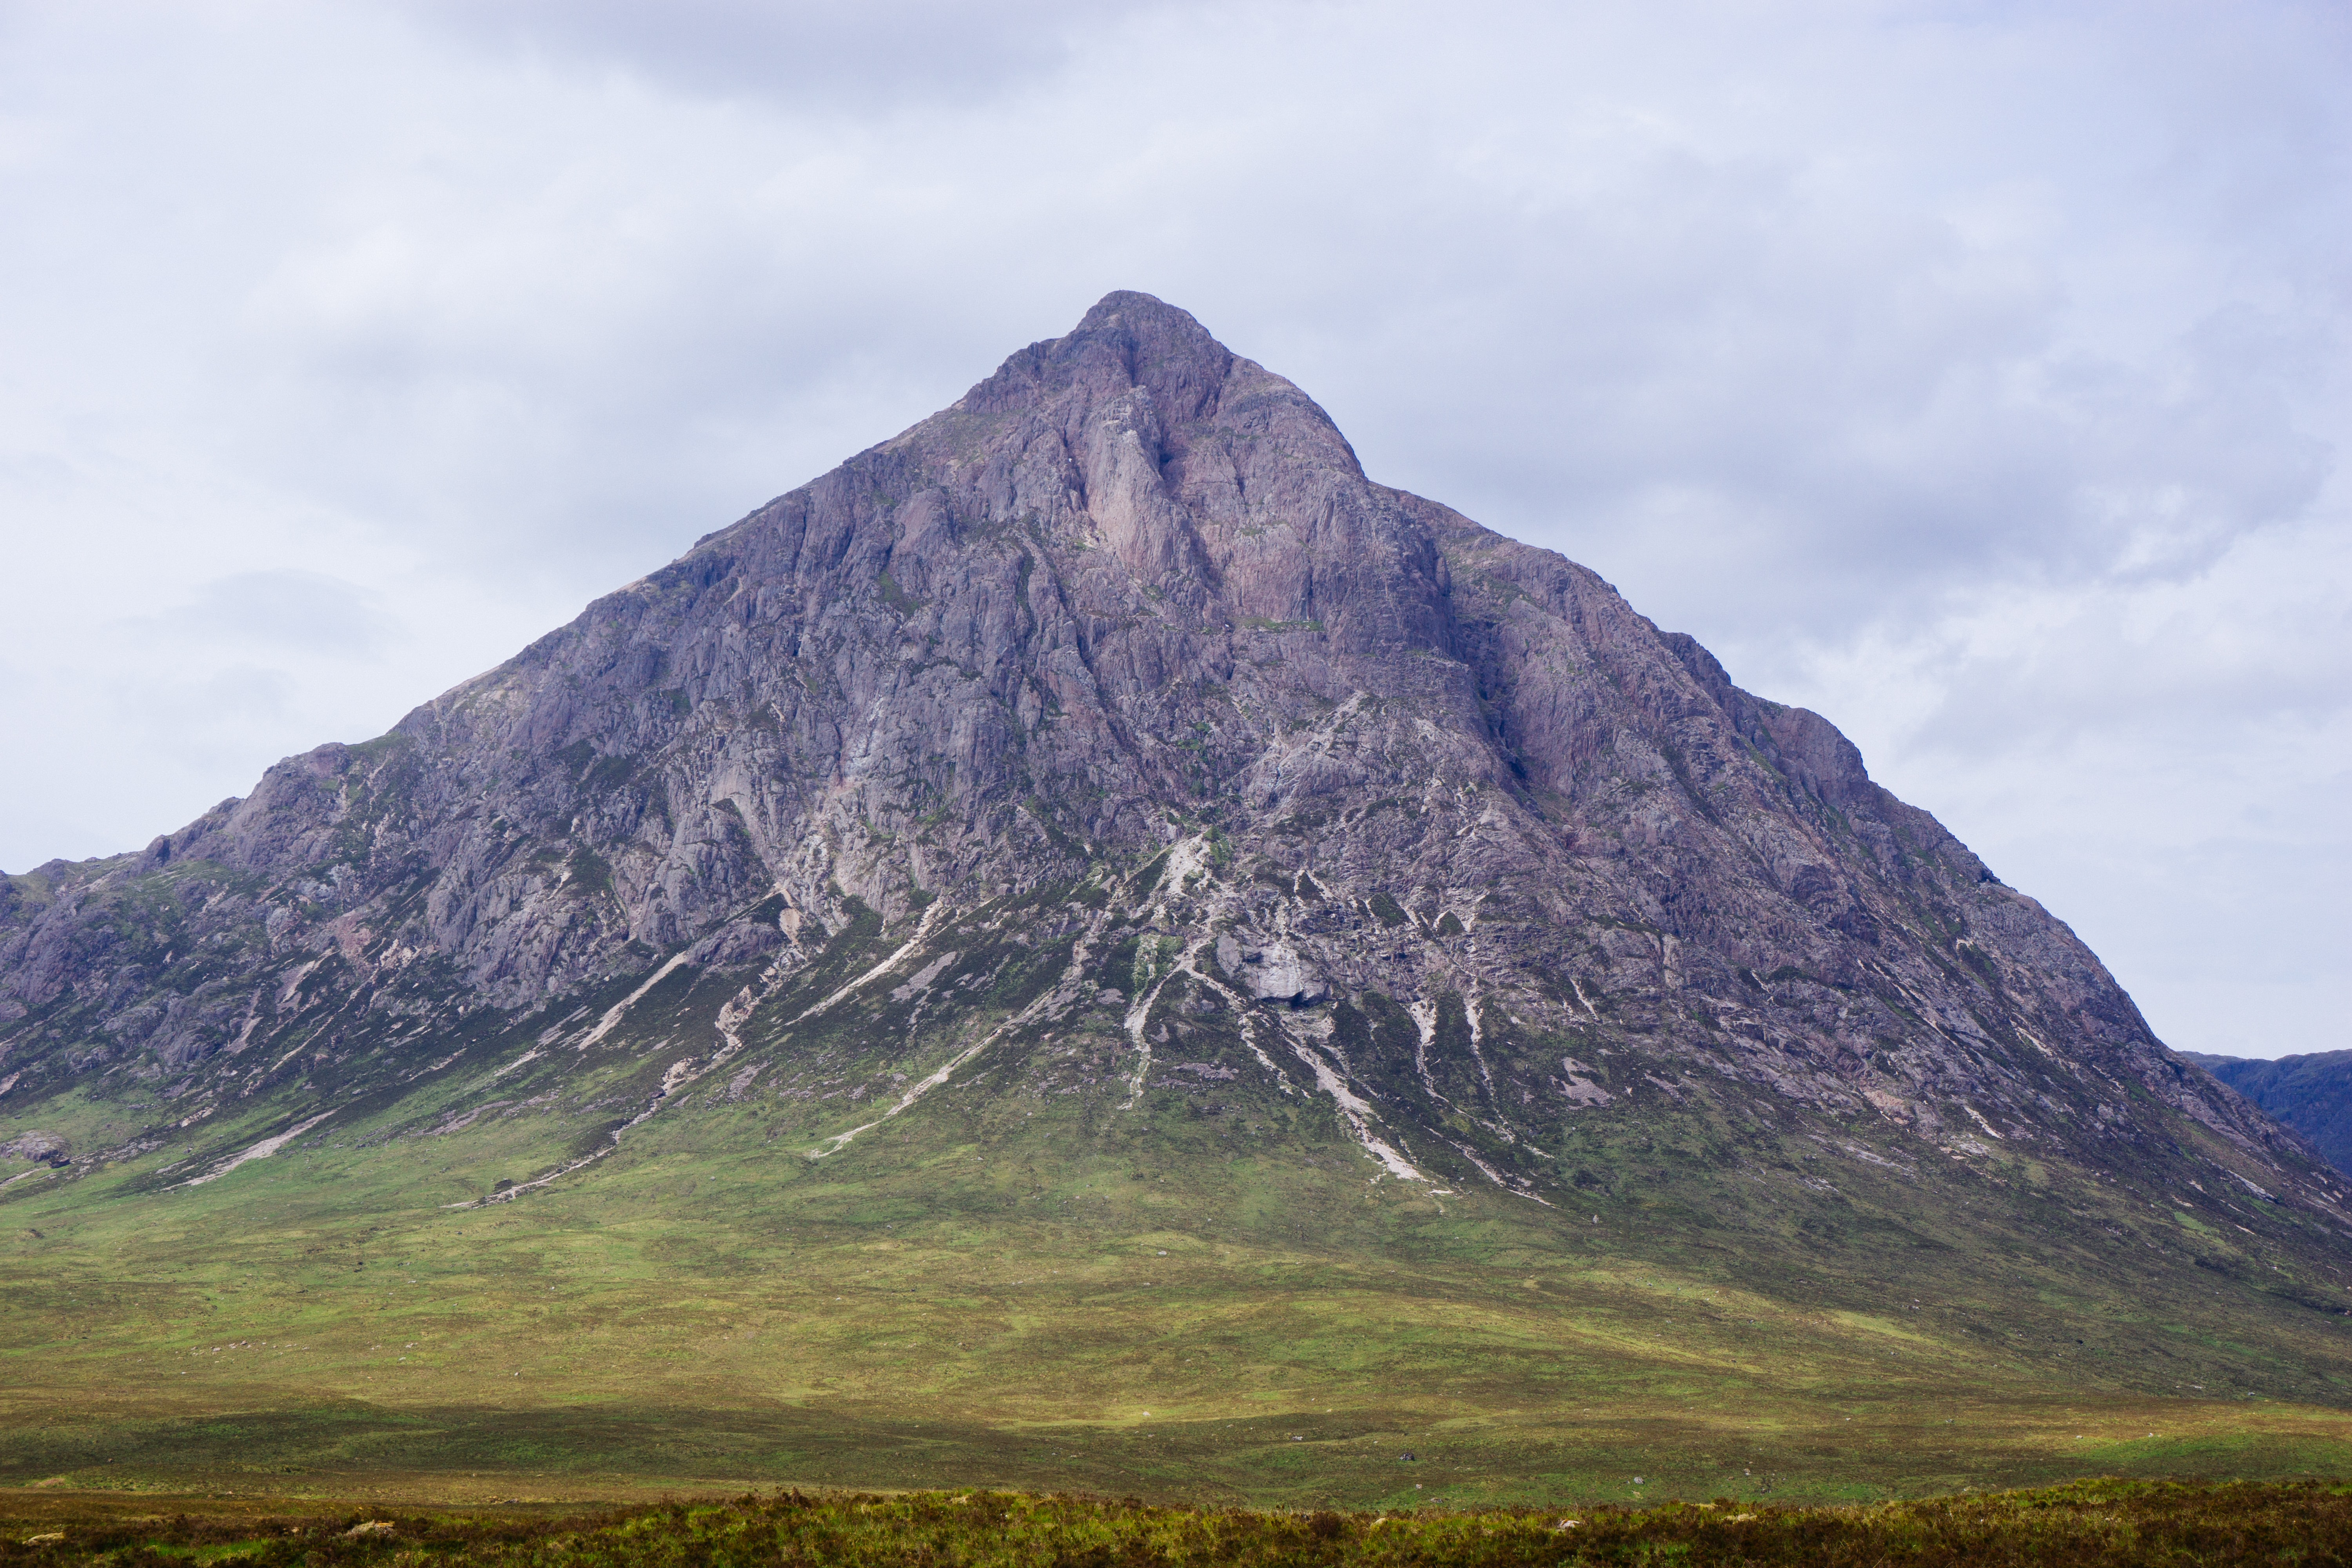 gray mountain under gray sky during daytime